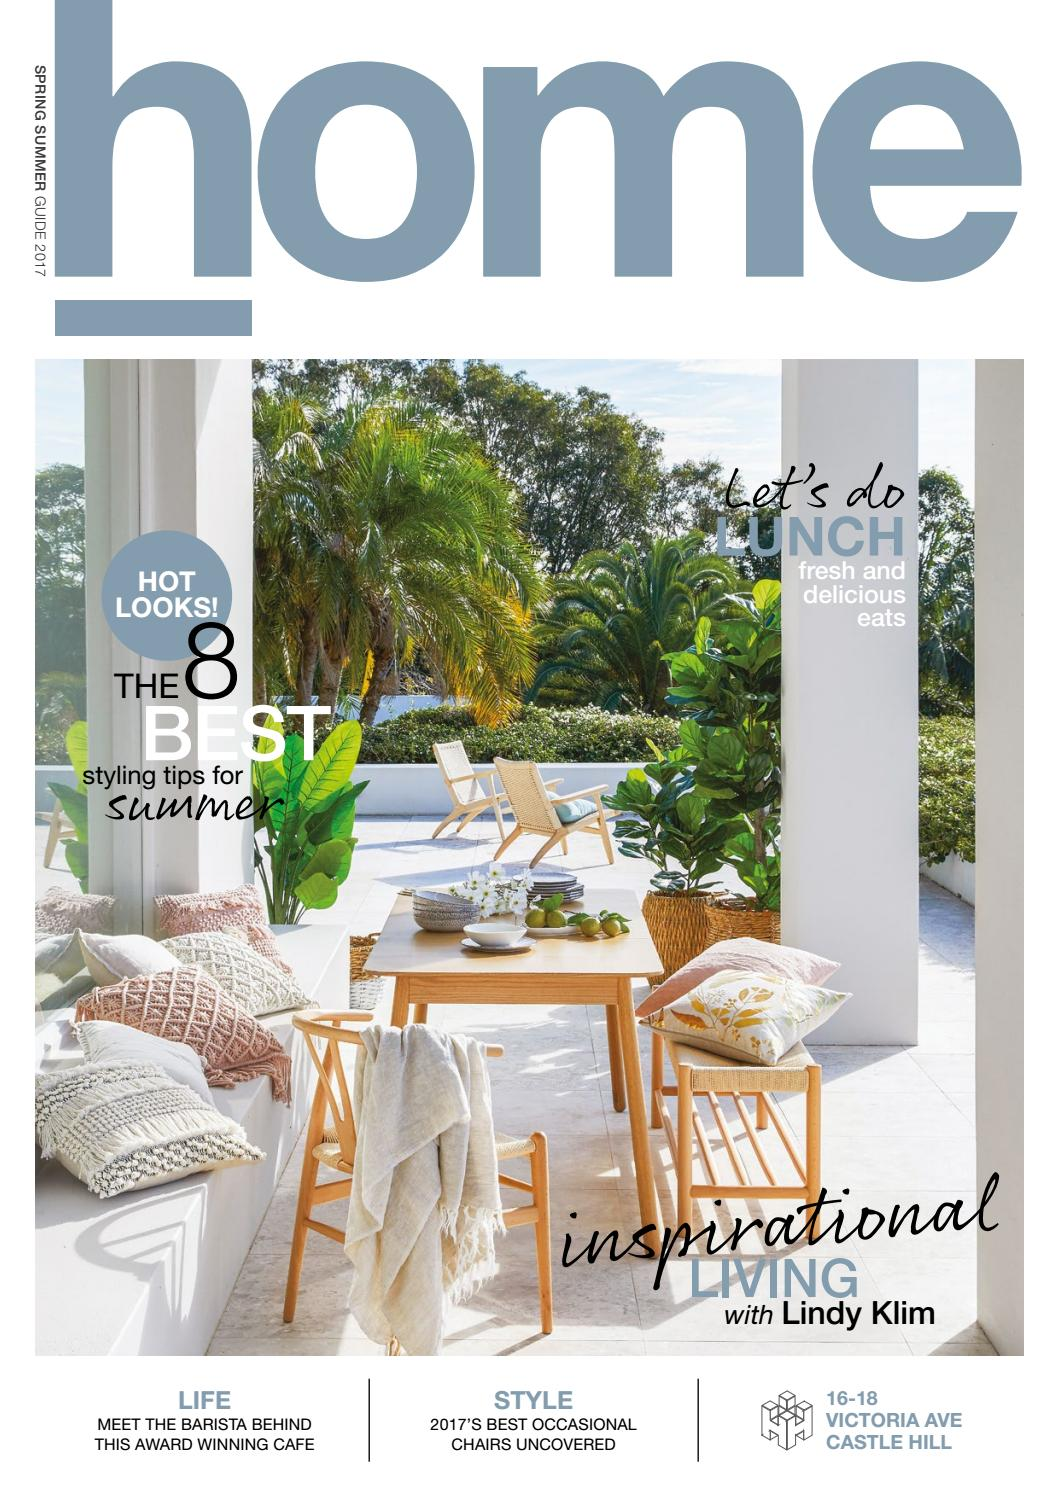 Home hub castle hill home ss17